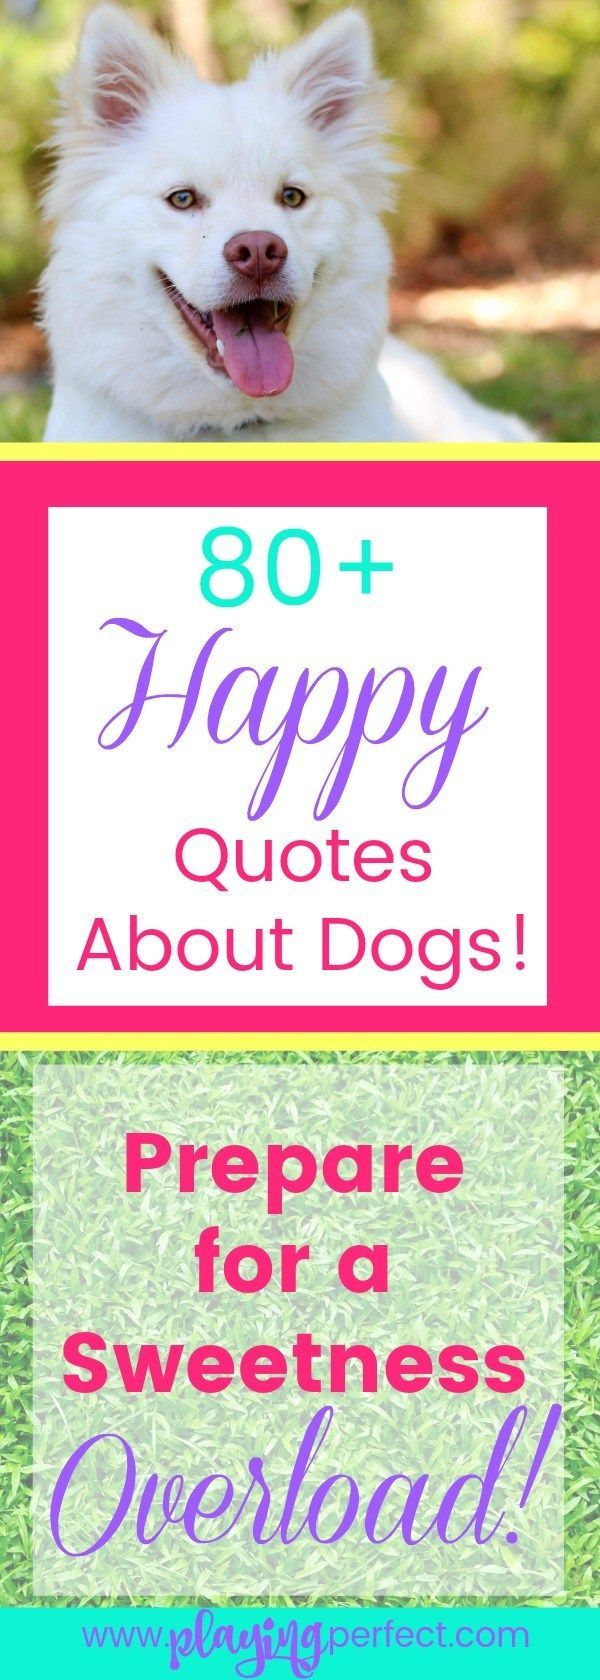 Dog quotes! Here are over 80 totally sweet dog lover quotes about dogs that will make you smile! Dogs are the best and if you're a dog parent you're gonna feel proud to be a dog person as you read these dog mom quotes! FREE dog printable too! | playingperfect.com | #dog #dogs #dogmom #dogmoms #dogpeople #dogsarethebest #goldenretriever #ilovemydog #pup  #puppies #puppy #bigdogs #cutedog #playingperfect #quotes #quote #quotesandbeautifulwords #quotesandsayings #quotestoliveby #happyquotes